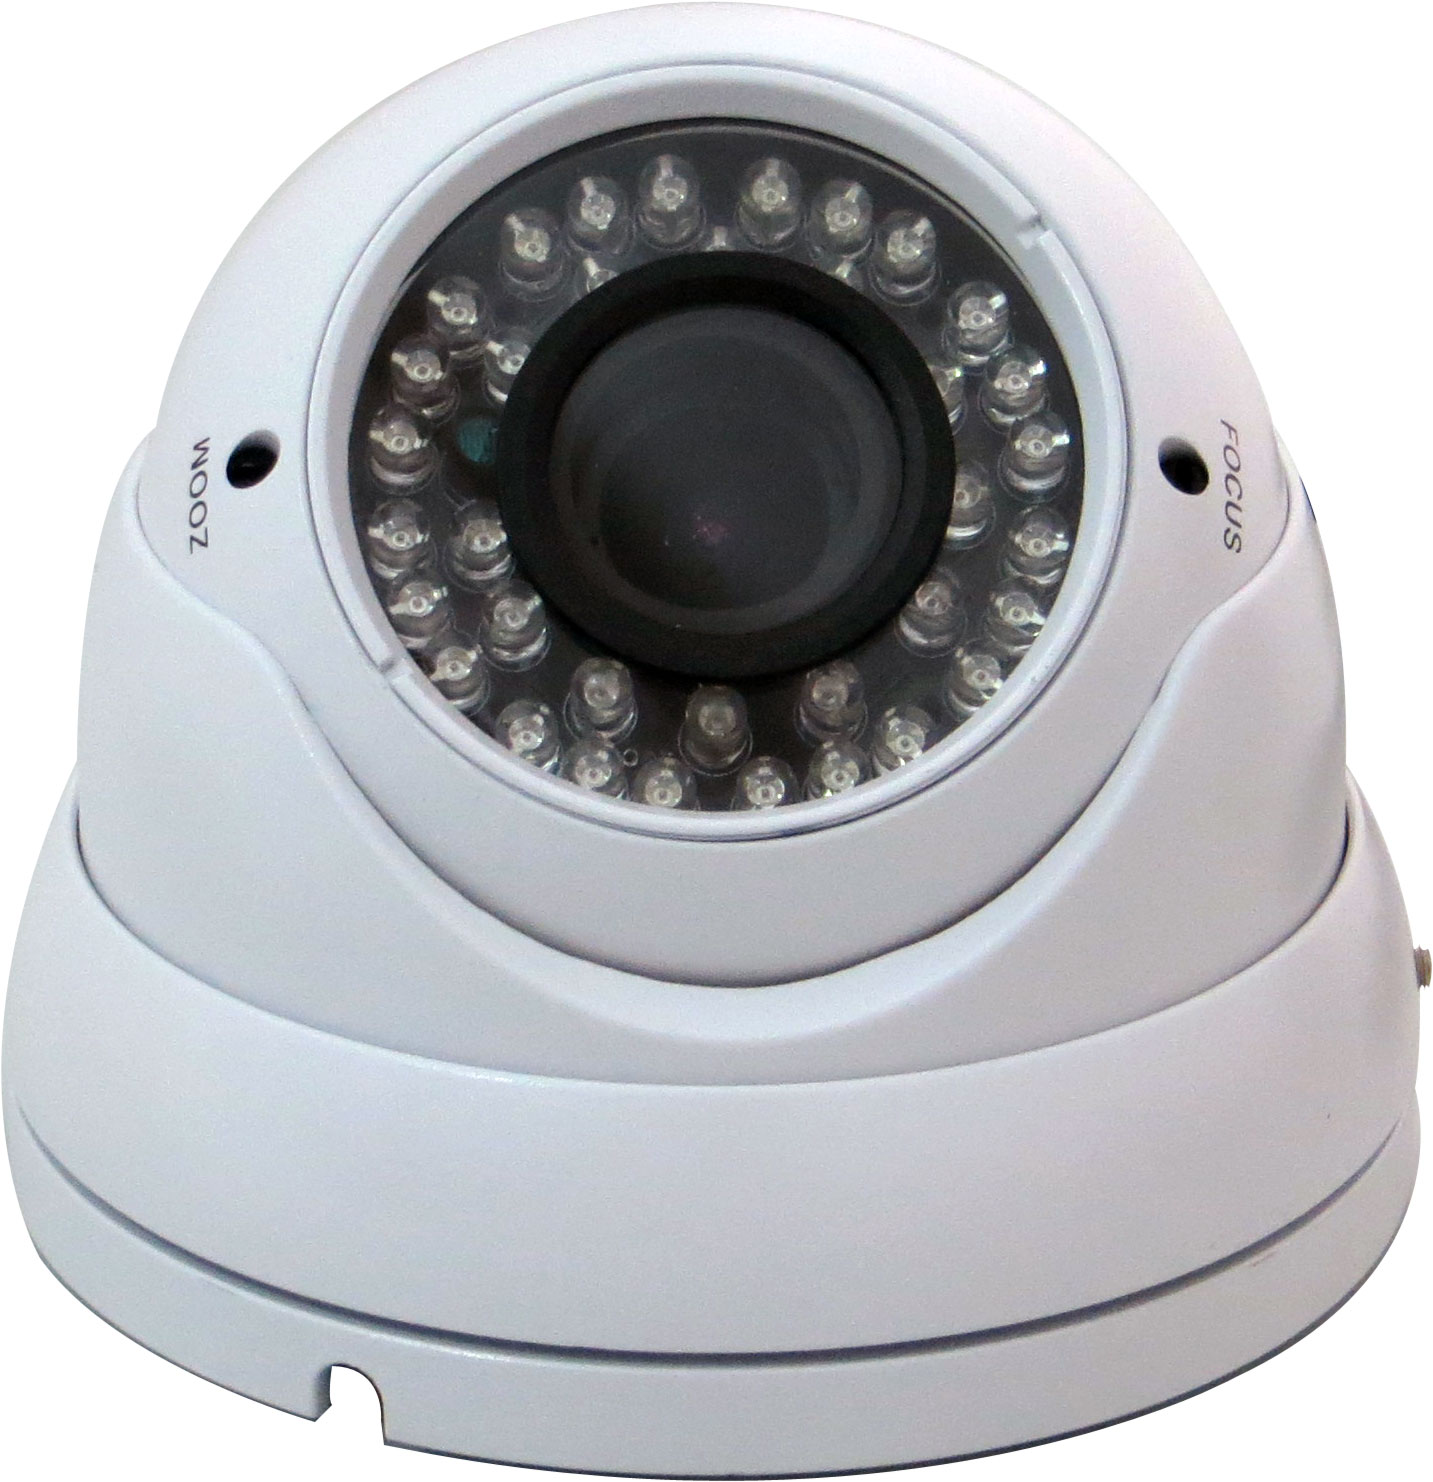 1080P HDCVI Outdoor Dome Camera, Eyeball 36 LED, 2.8-12mm, White